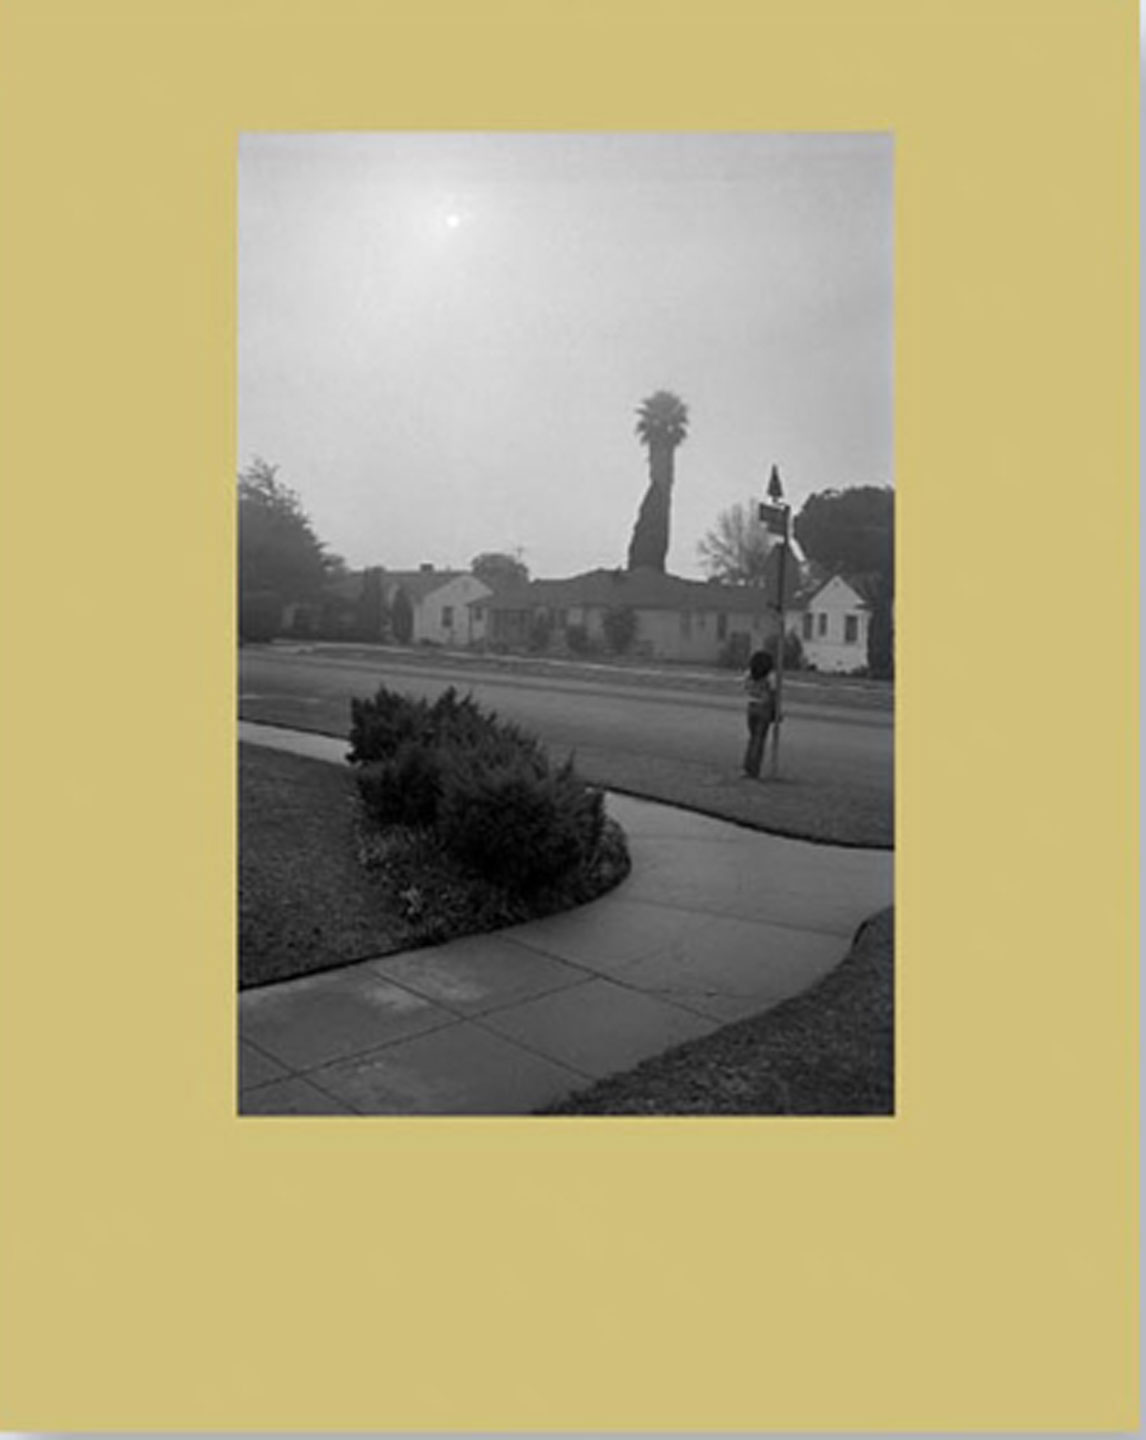 NZ Library #3: Mark Steinmetz: Angel City West: Volume Two, Limited Edition (NZ Library - Set Three) [SIGNED]